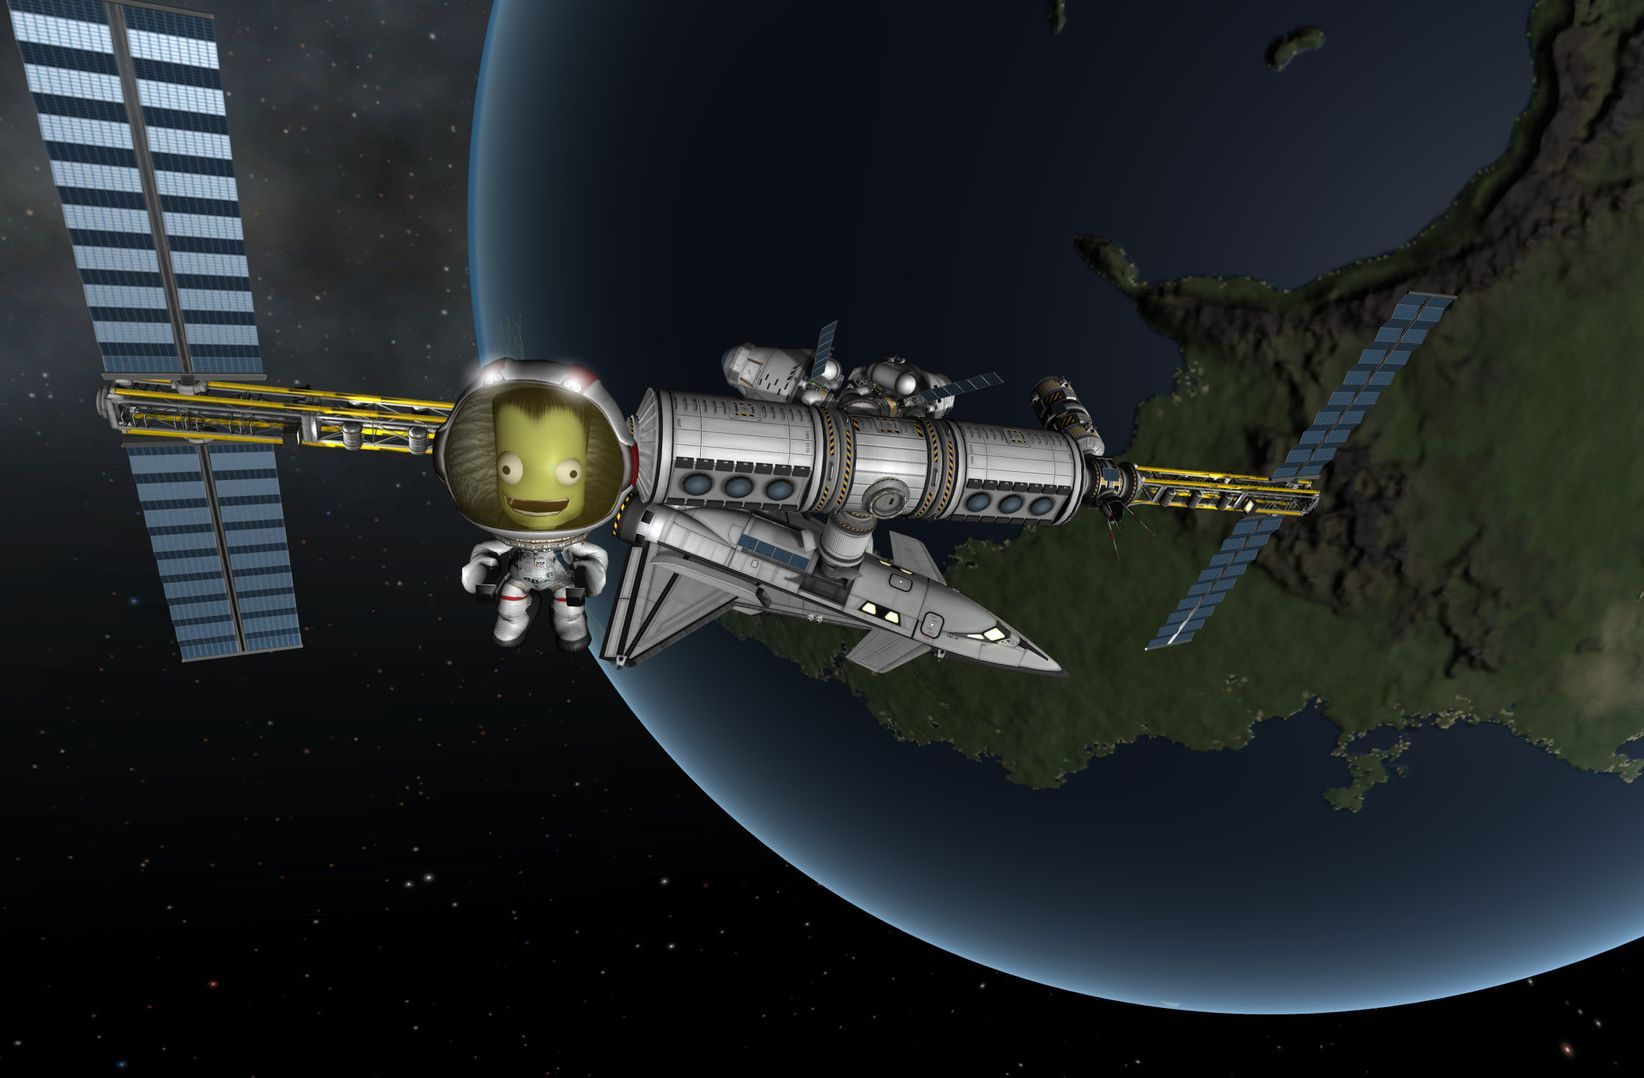 kerbal space station build - photo #20